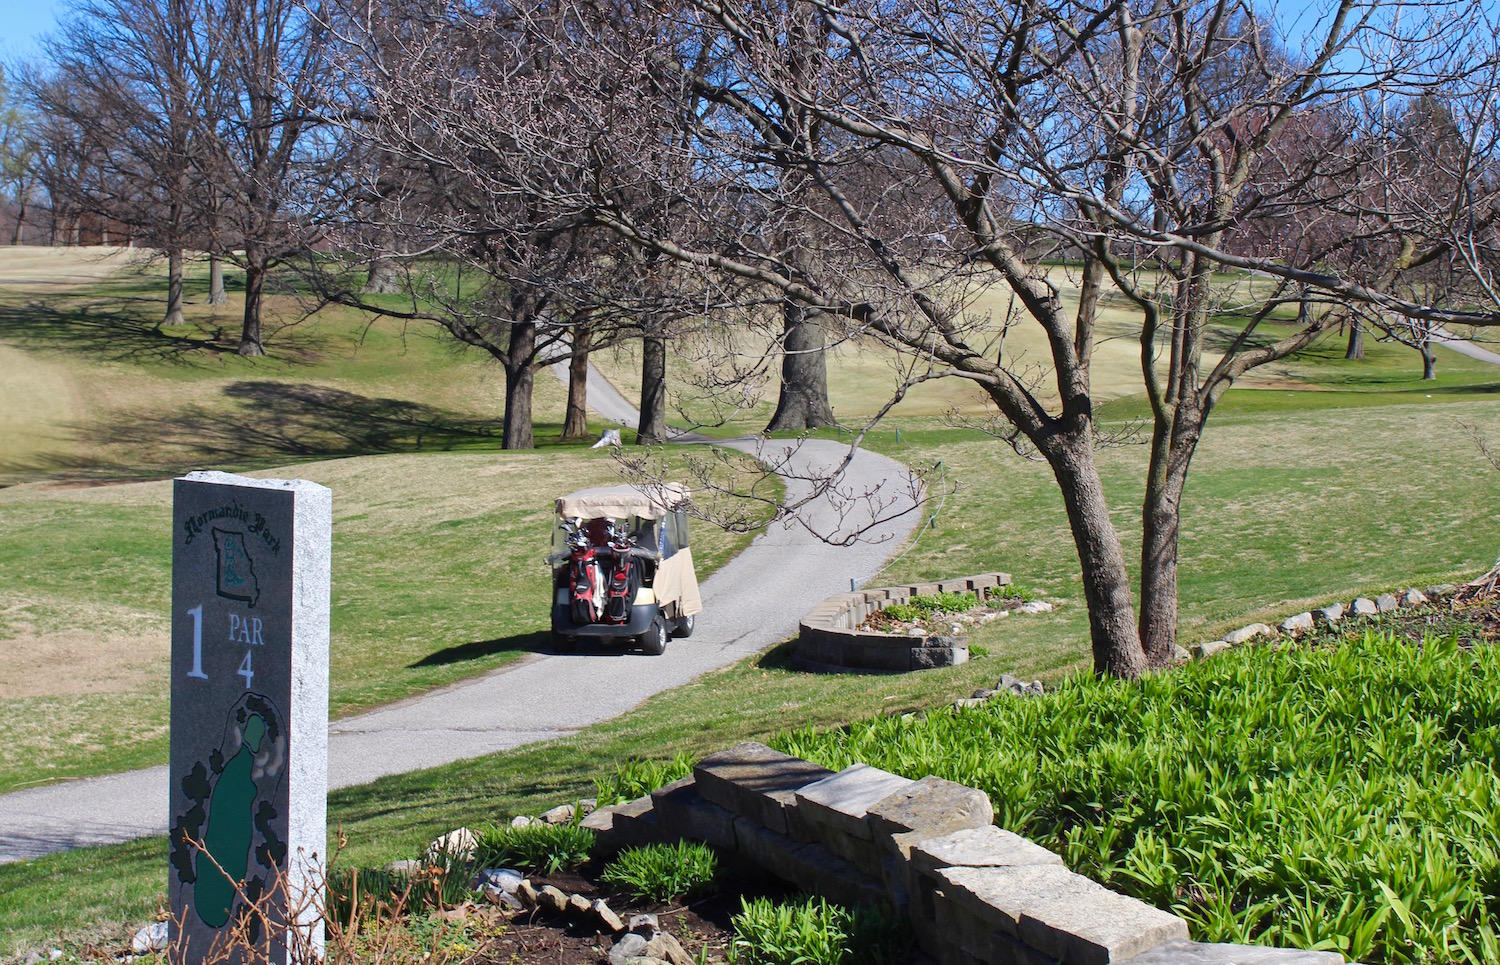 Curious Louis gets a history lesson about golf courses in Normandy on golf cart smashed, golf cart damage, golf cart museum, golf cart modified, golf cart extended, golf cart industrial, golf cart school, golf cart cities, golf cart hotel, golf cart sunk,